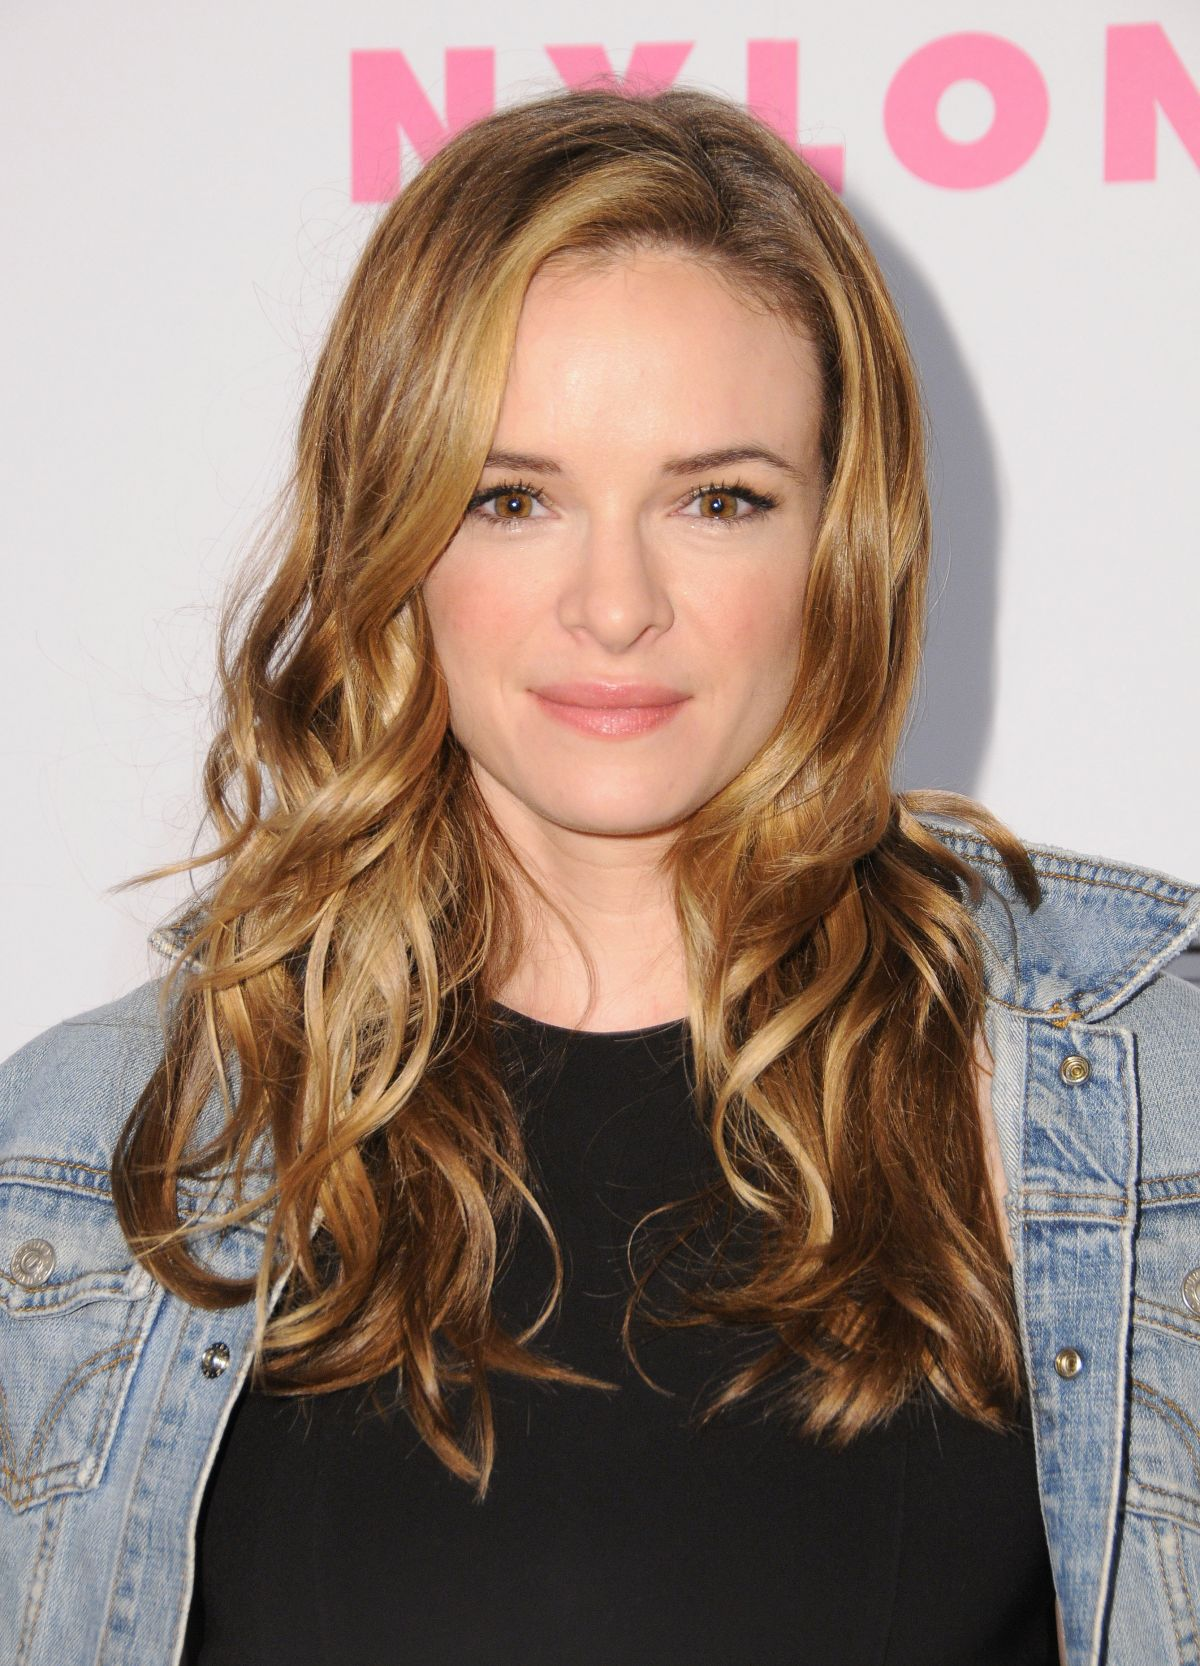 DANIELLE PANABAKER at Nylon Young Hollywood May Issue Party in Los Angeles 05/02/2017